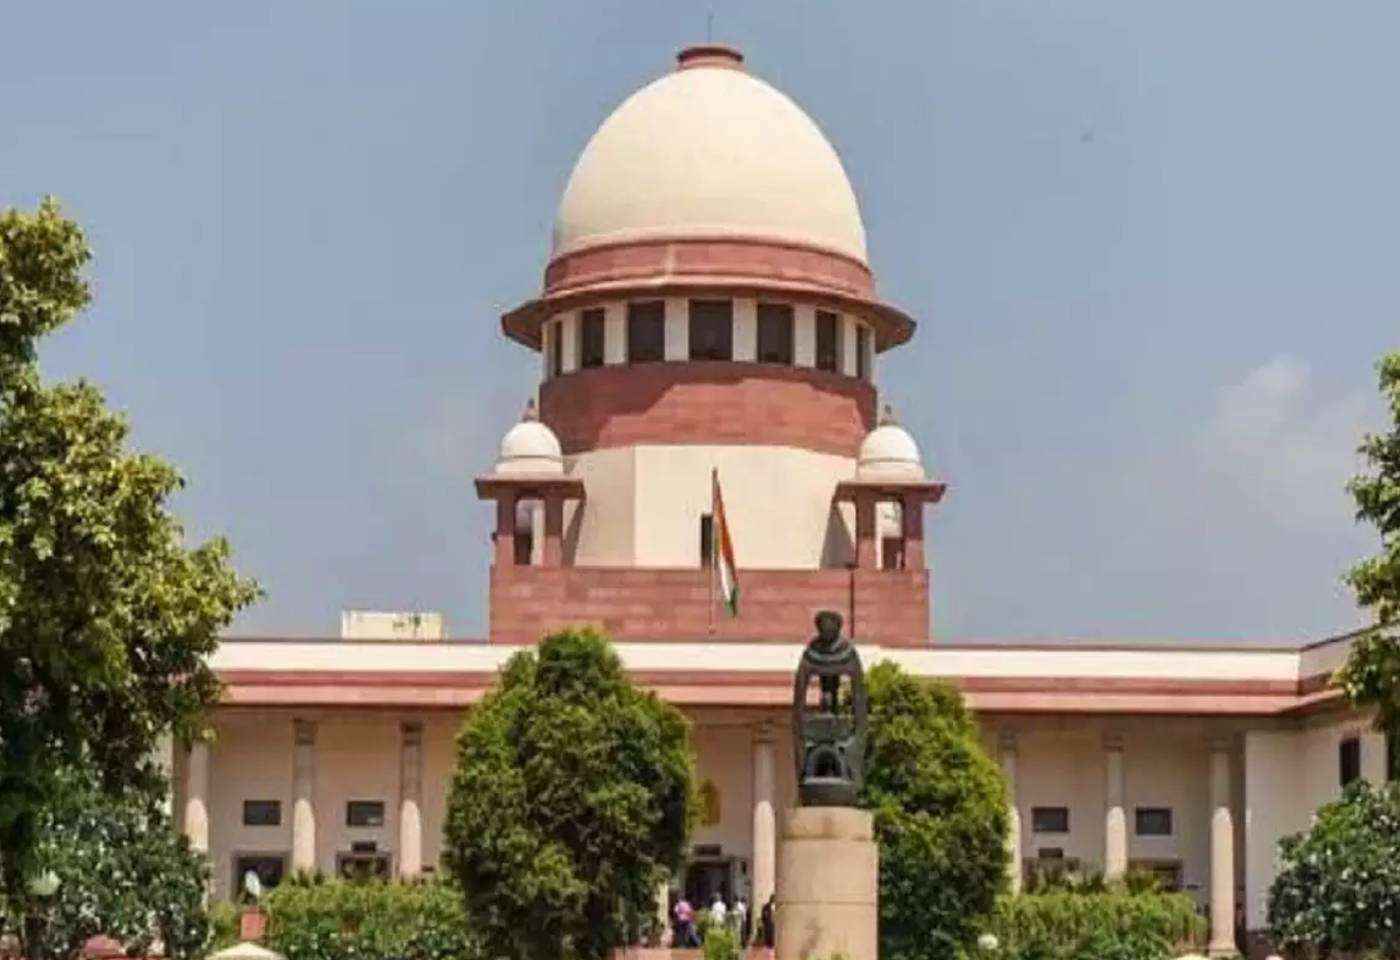 Pegasus spying case reached in Supreme Court, PIL demands SIT probe and stay on software purchase